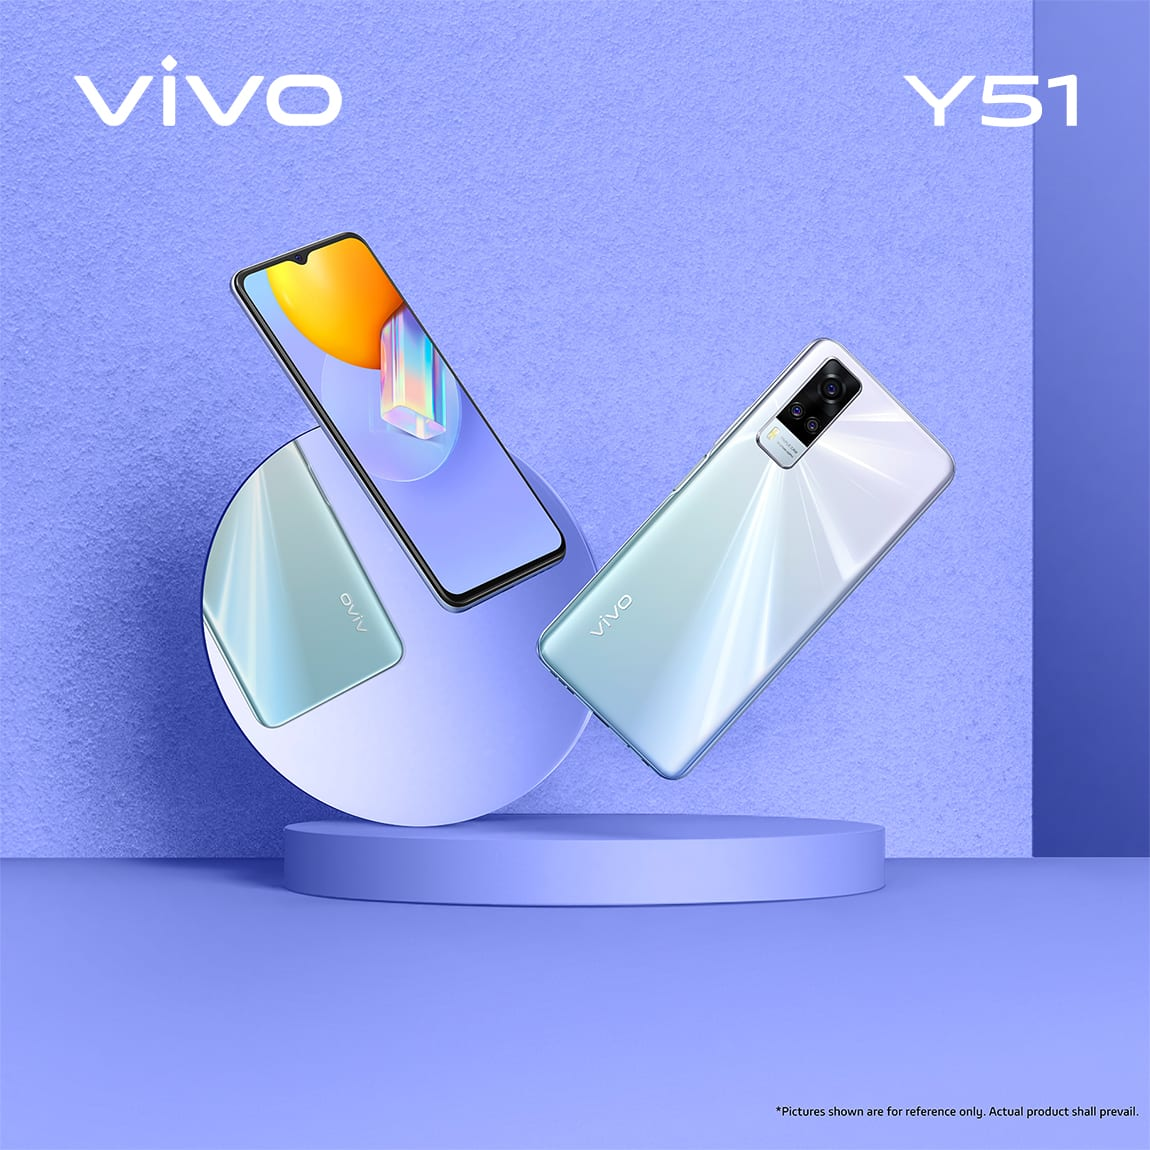 vivo announces the launch of vivo Y51 for the Egyptian market